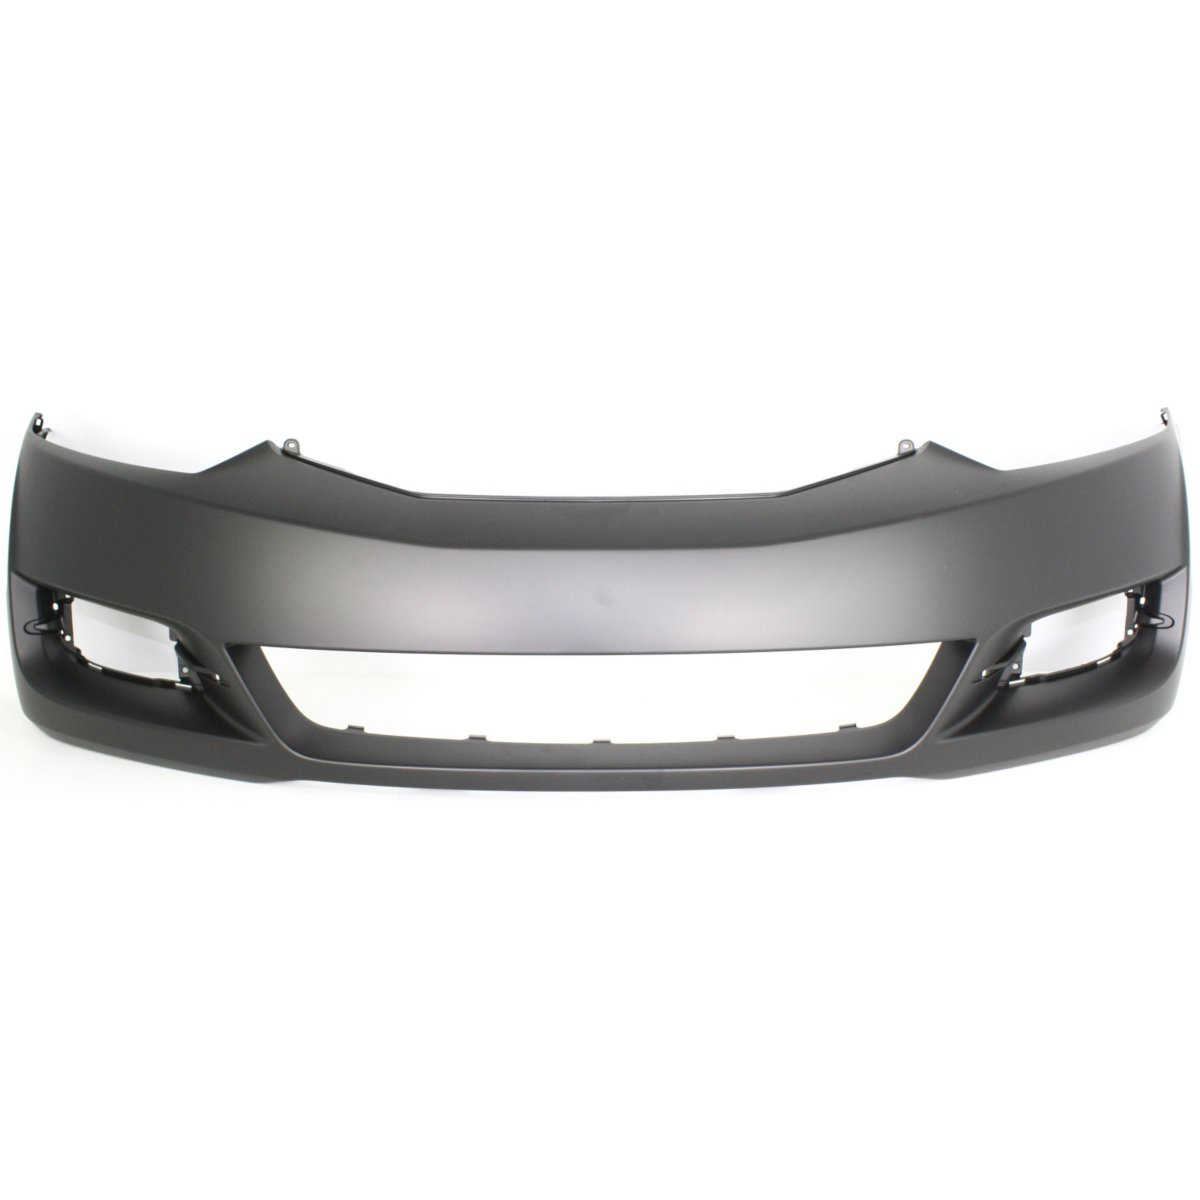 2009-2011 HONDA CIVIC Coupe 2 door Front Bumper Cover Coupe Painted to Match